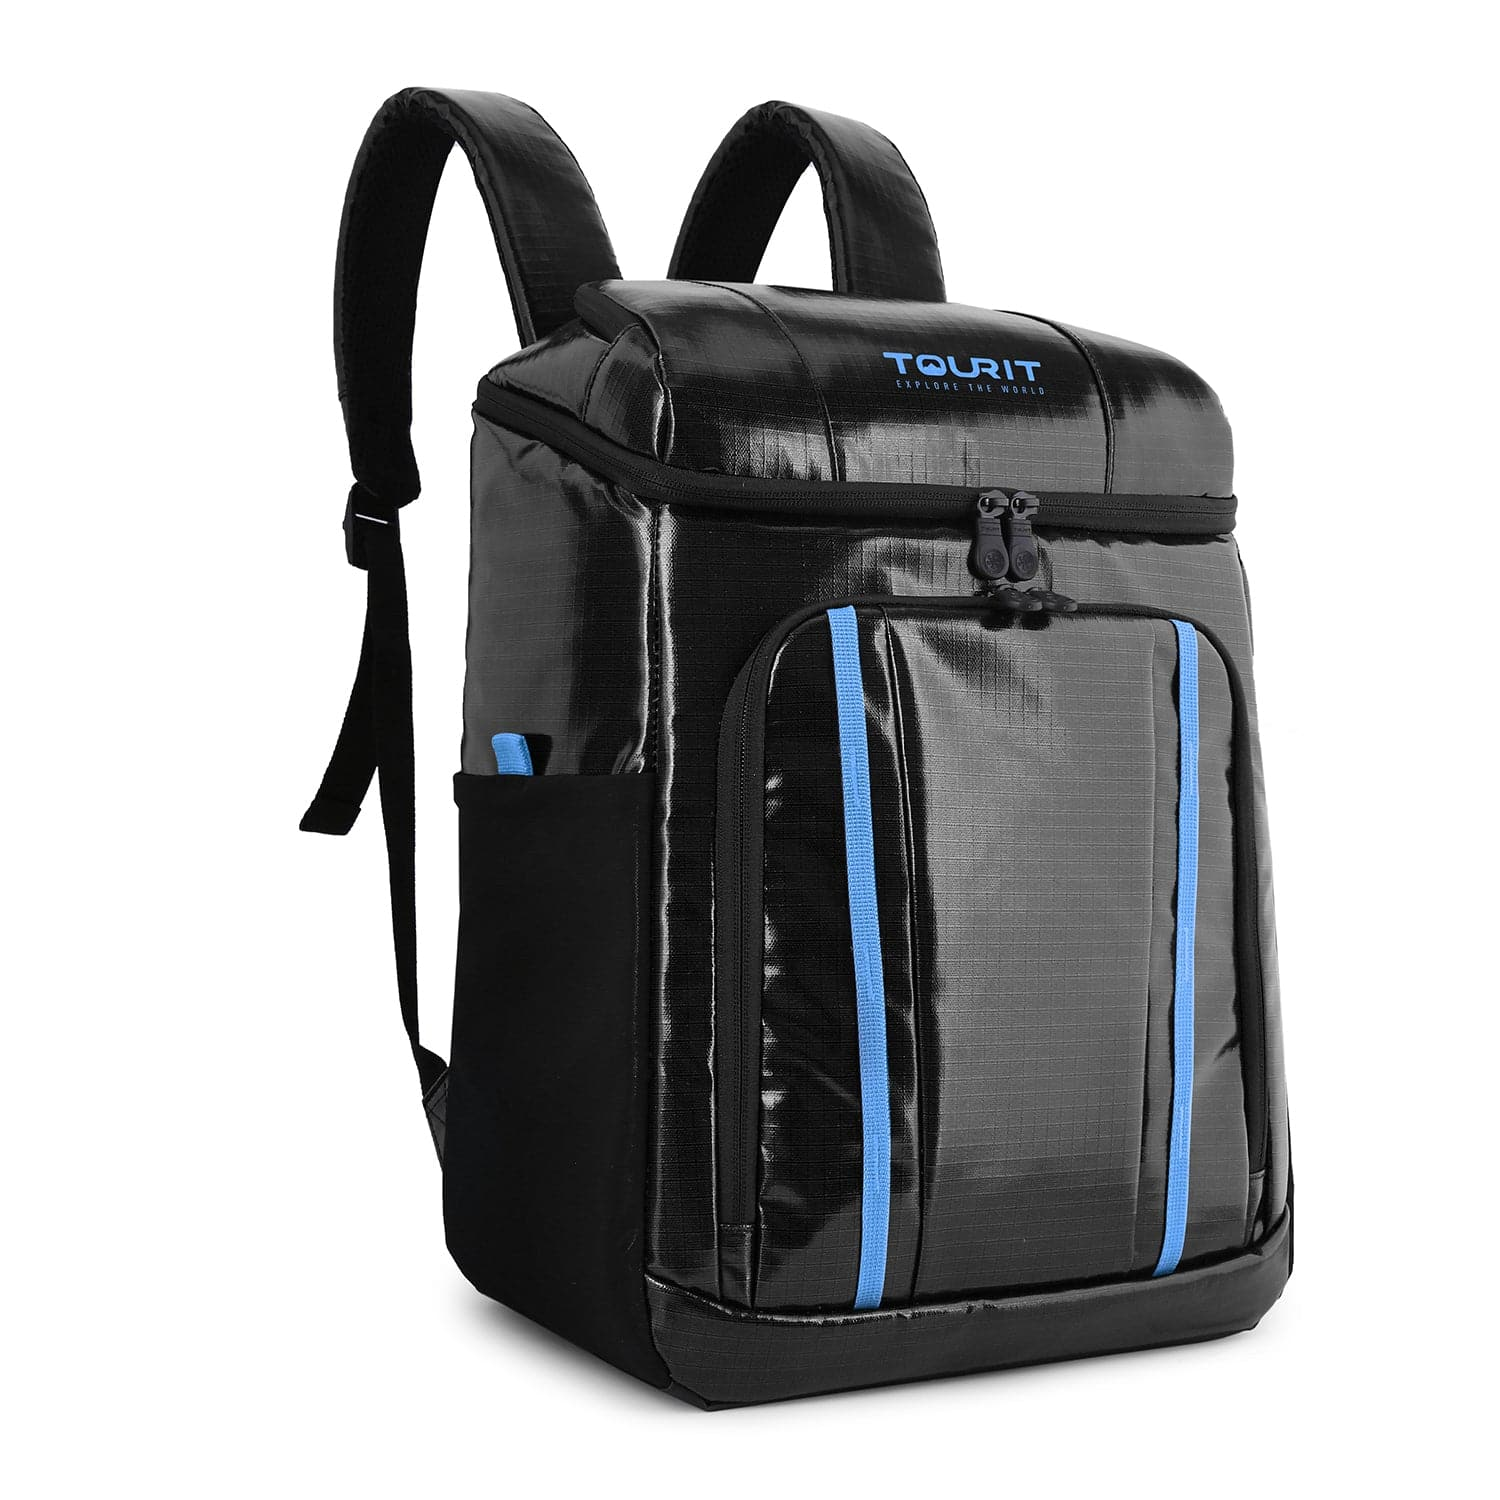 Premium Coolers Camping Soft Coolers Backpack Travel Bags